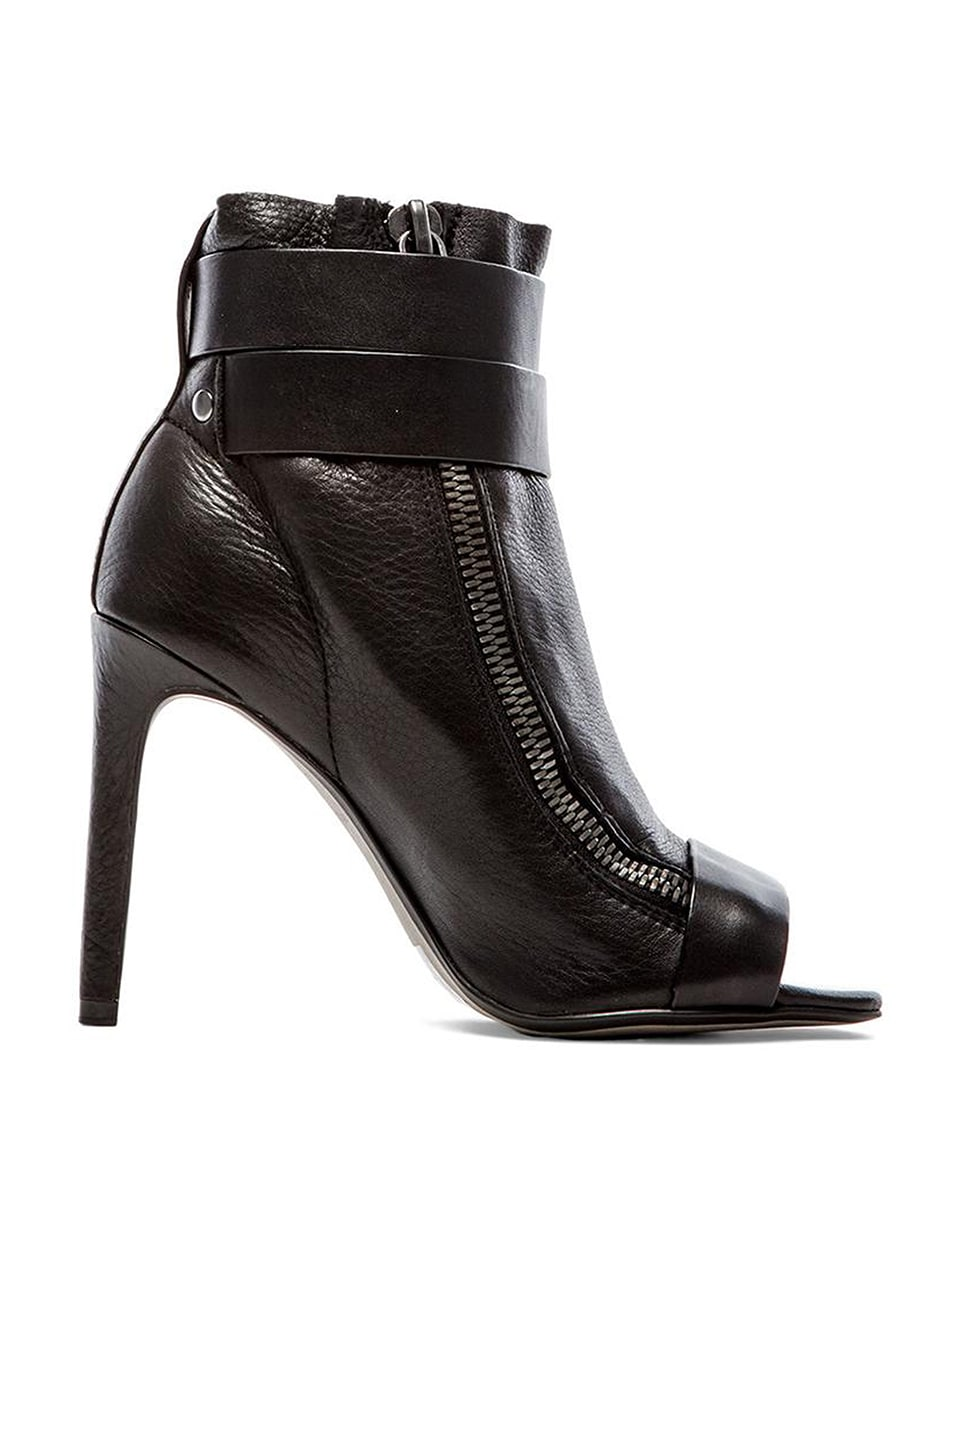 Dolce Vita Harbor Bootie in Black